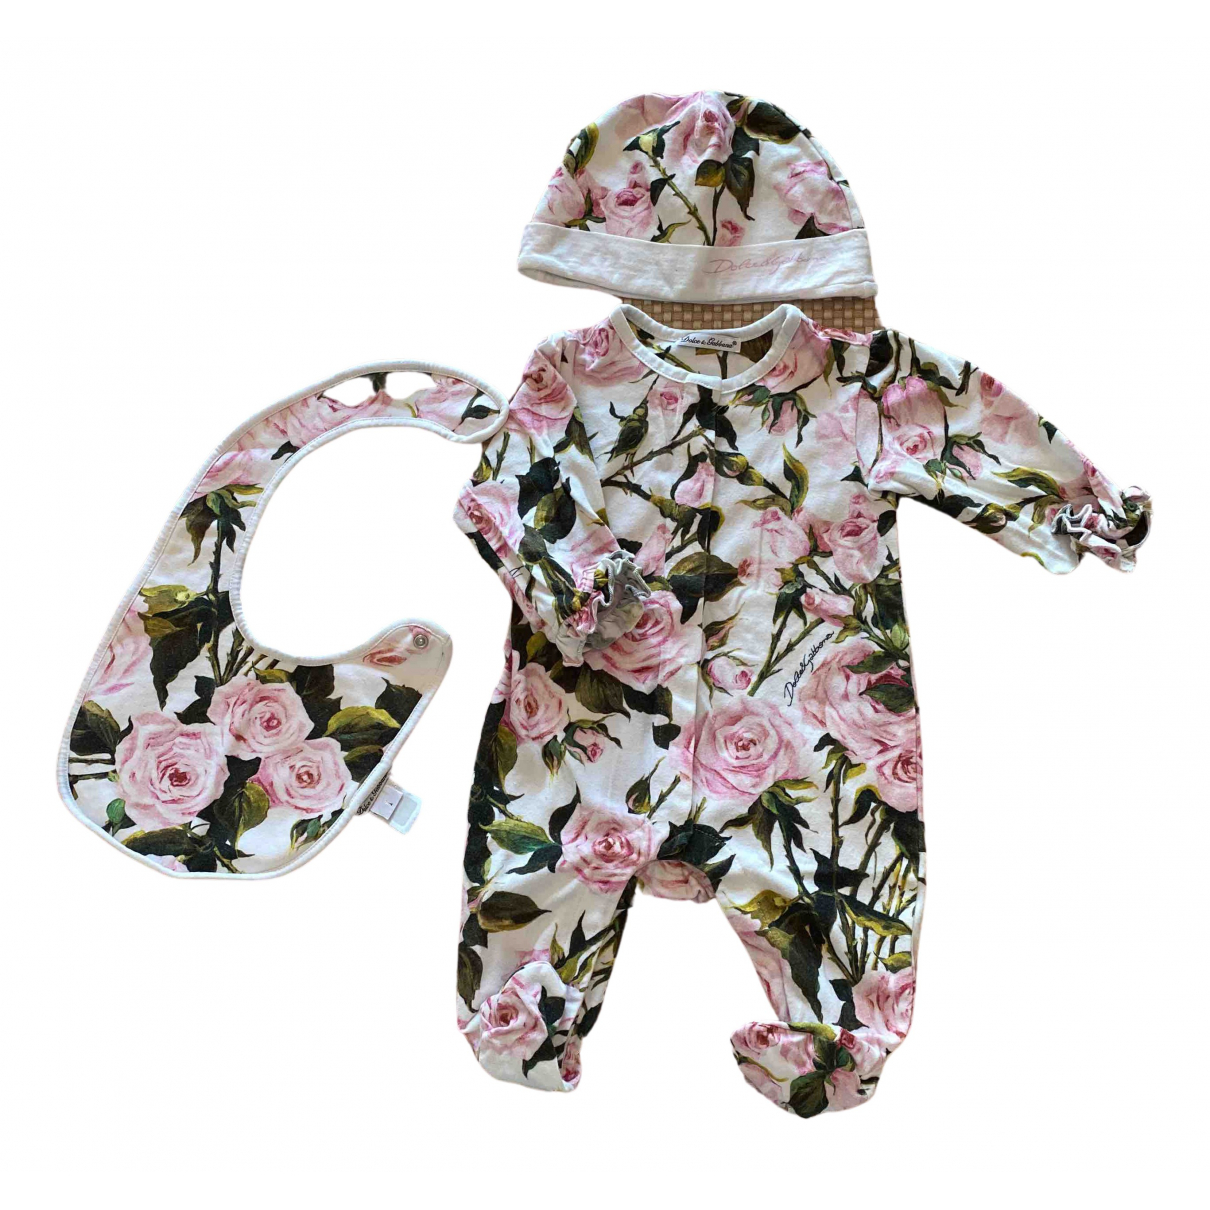 Dolce & Gabbana N White Cotton Outfits for Kids 3 months - up to 60cm FR